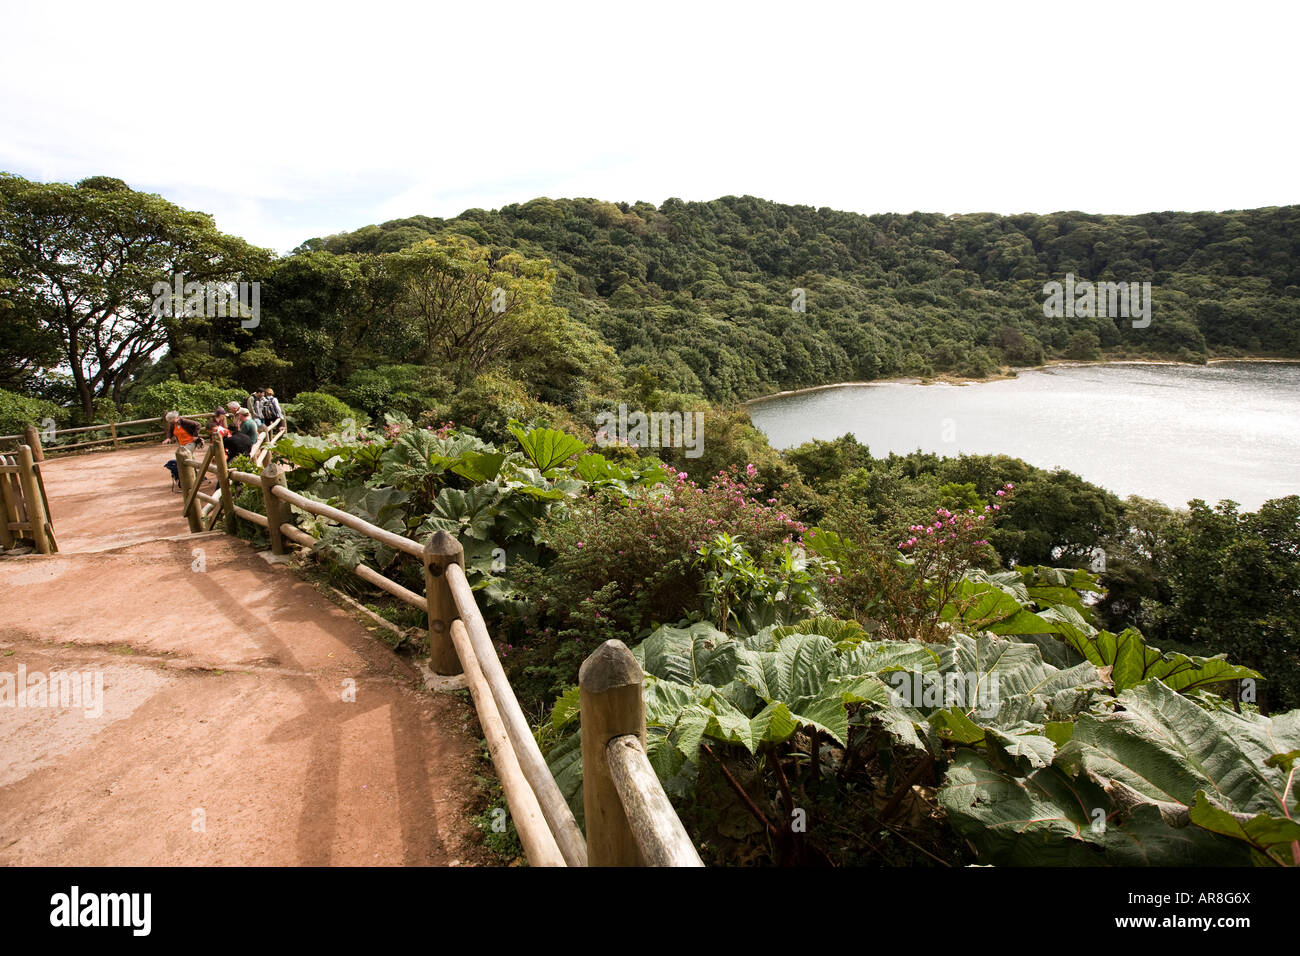 Costa Rica volcan Poas Volcano National Park Laguna Botos Lagoon people at viewpoint - Stock Image